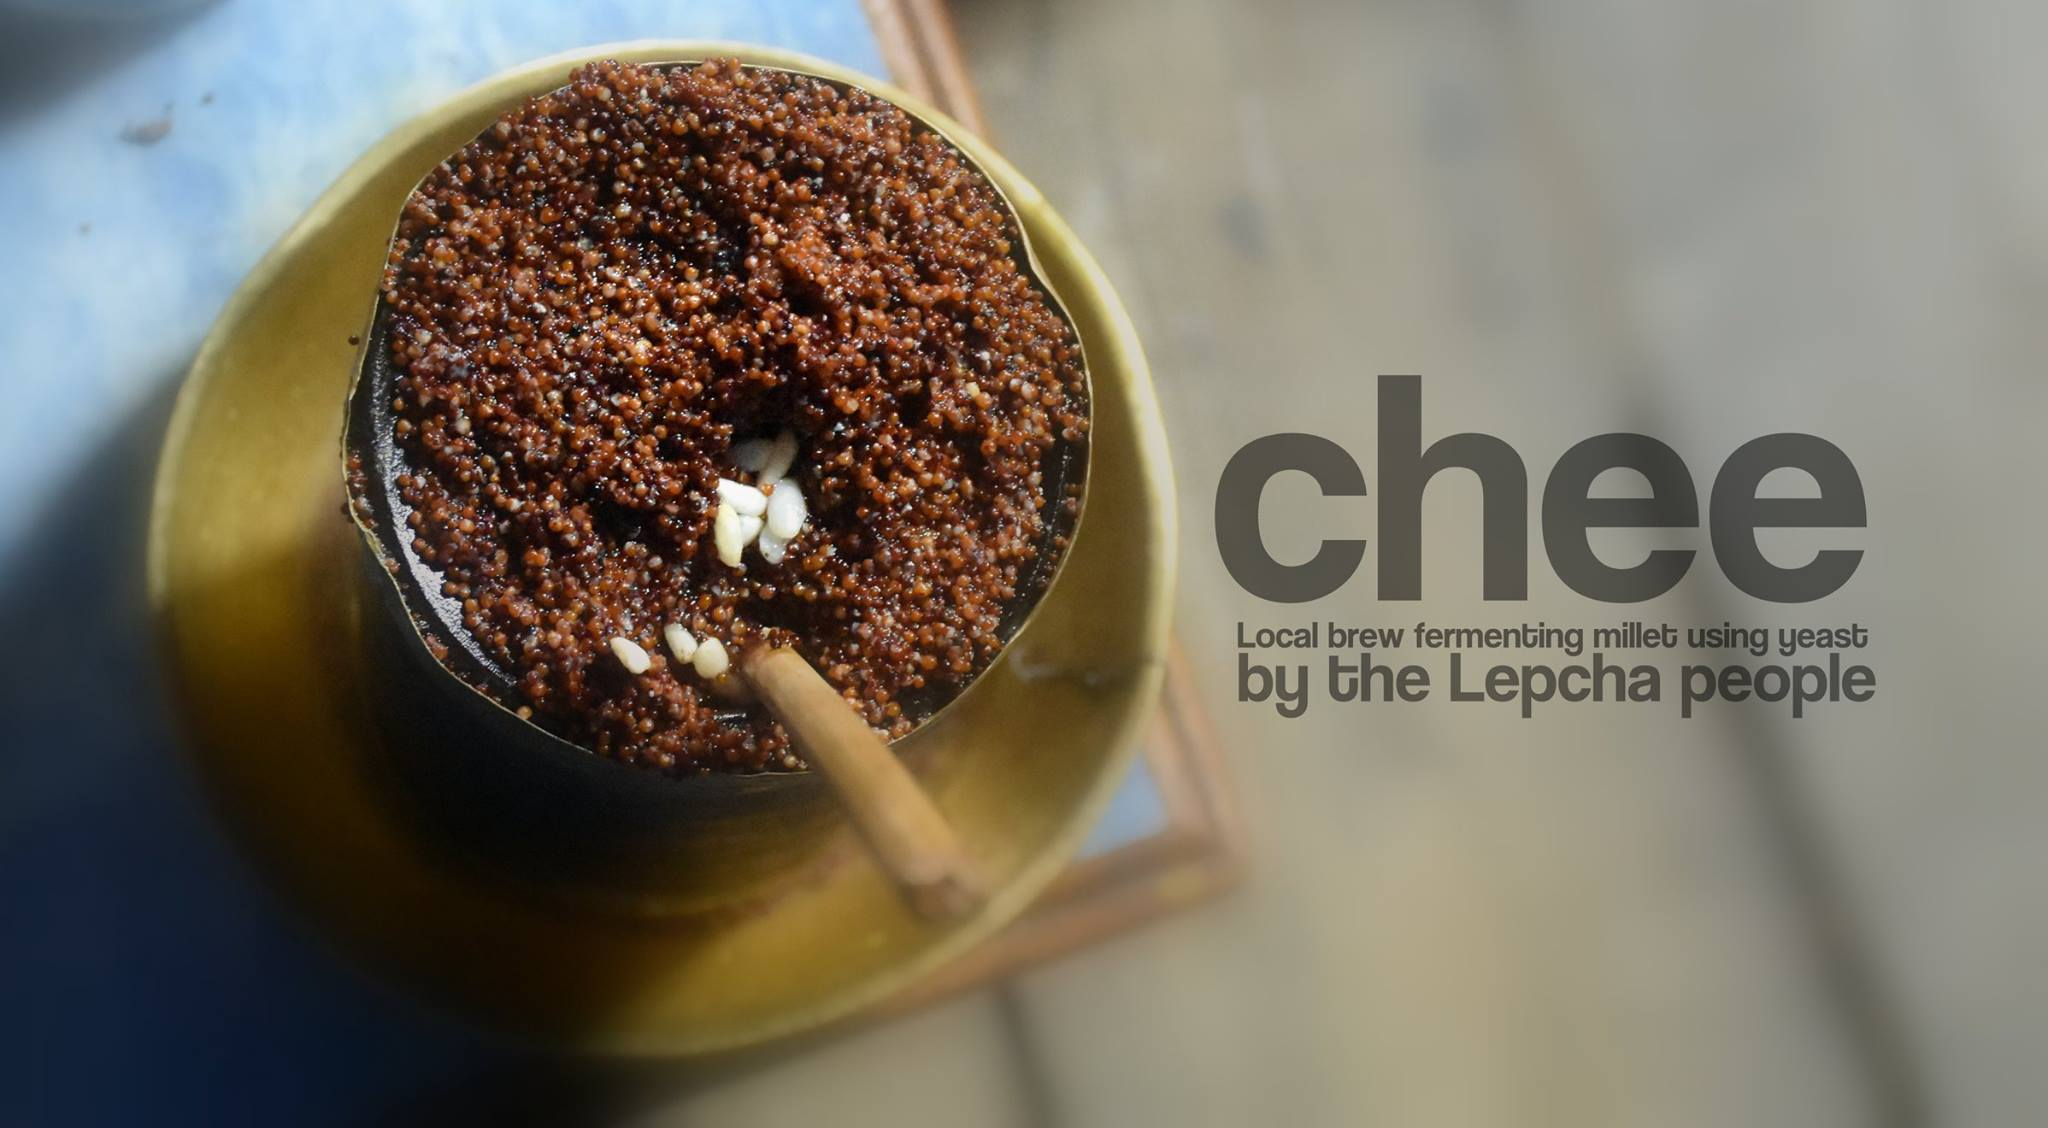 Chee - a Lepcha local drink made from millet